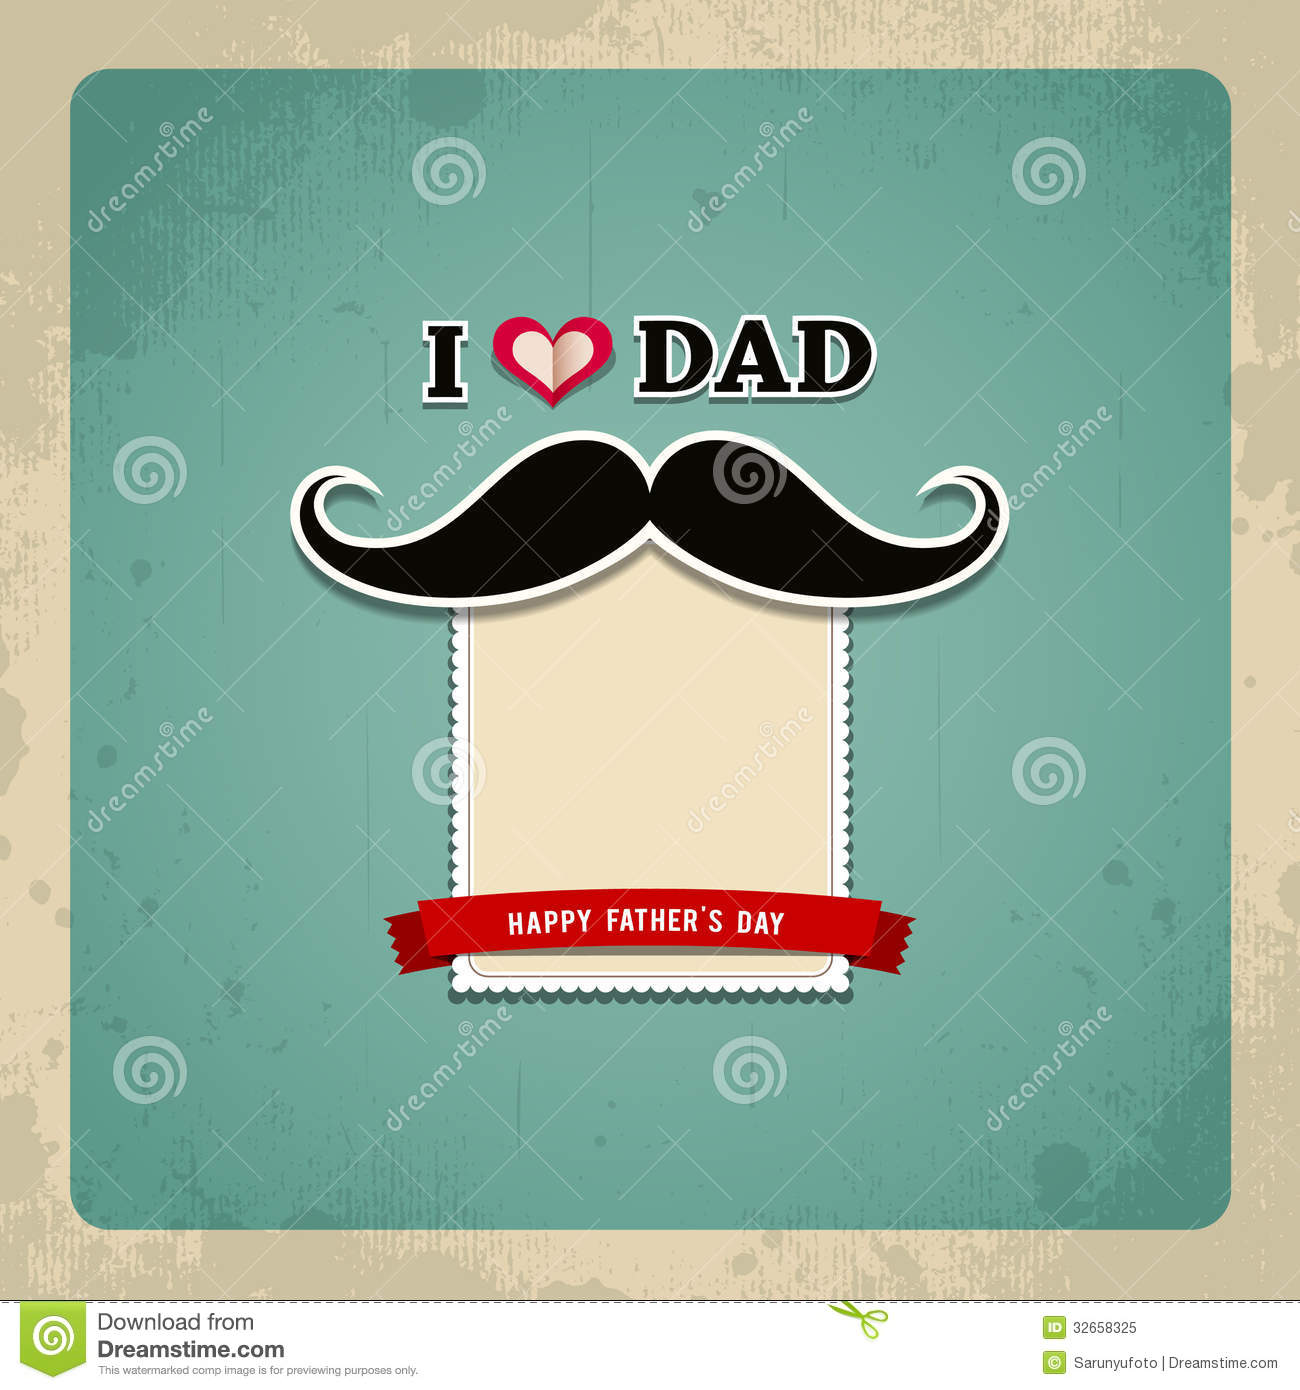 Happy Fathers Day Vintage Greeting Card Royalty Free Stock Photo ...